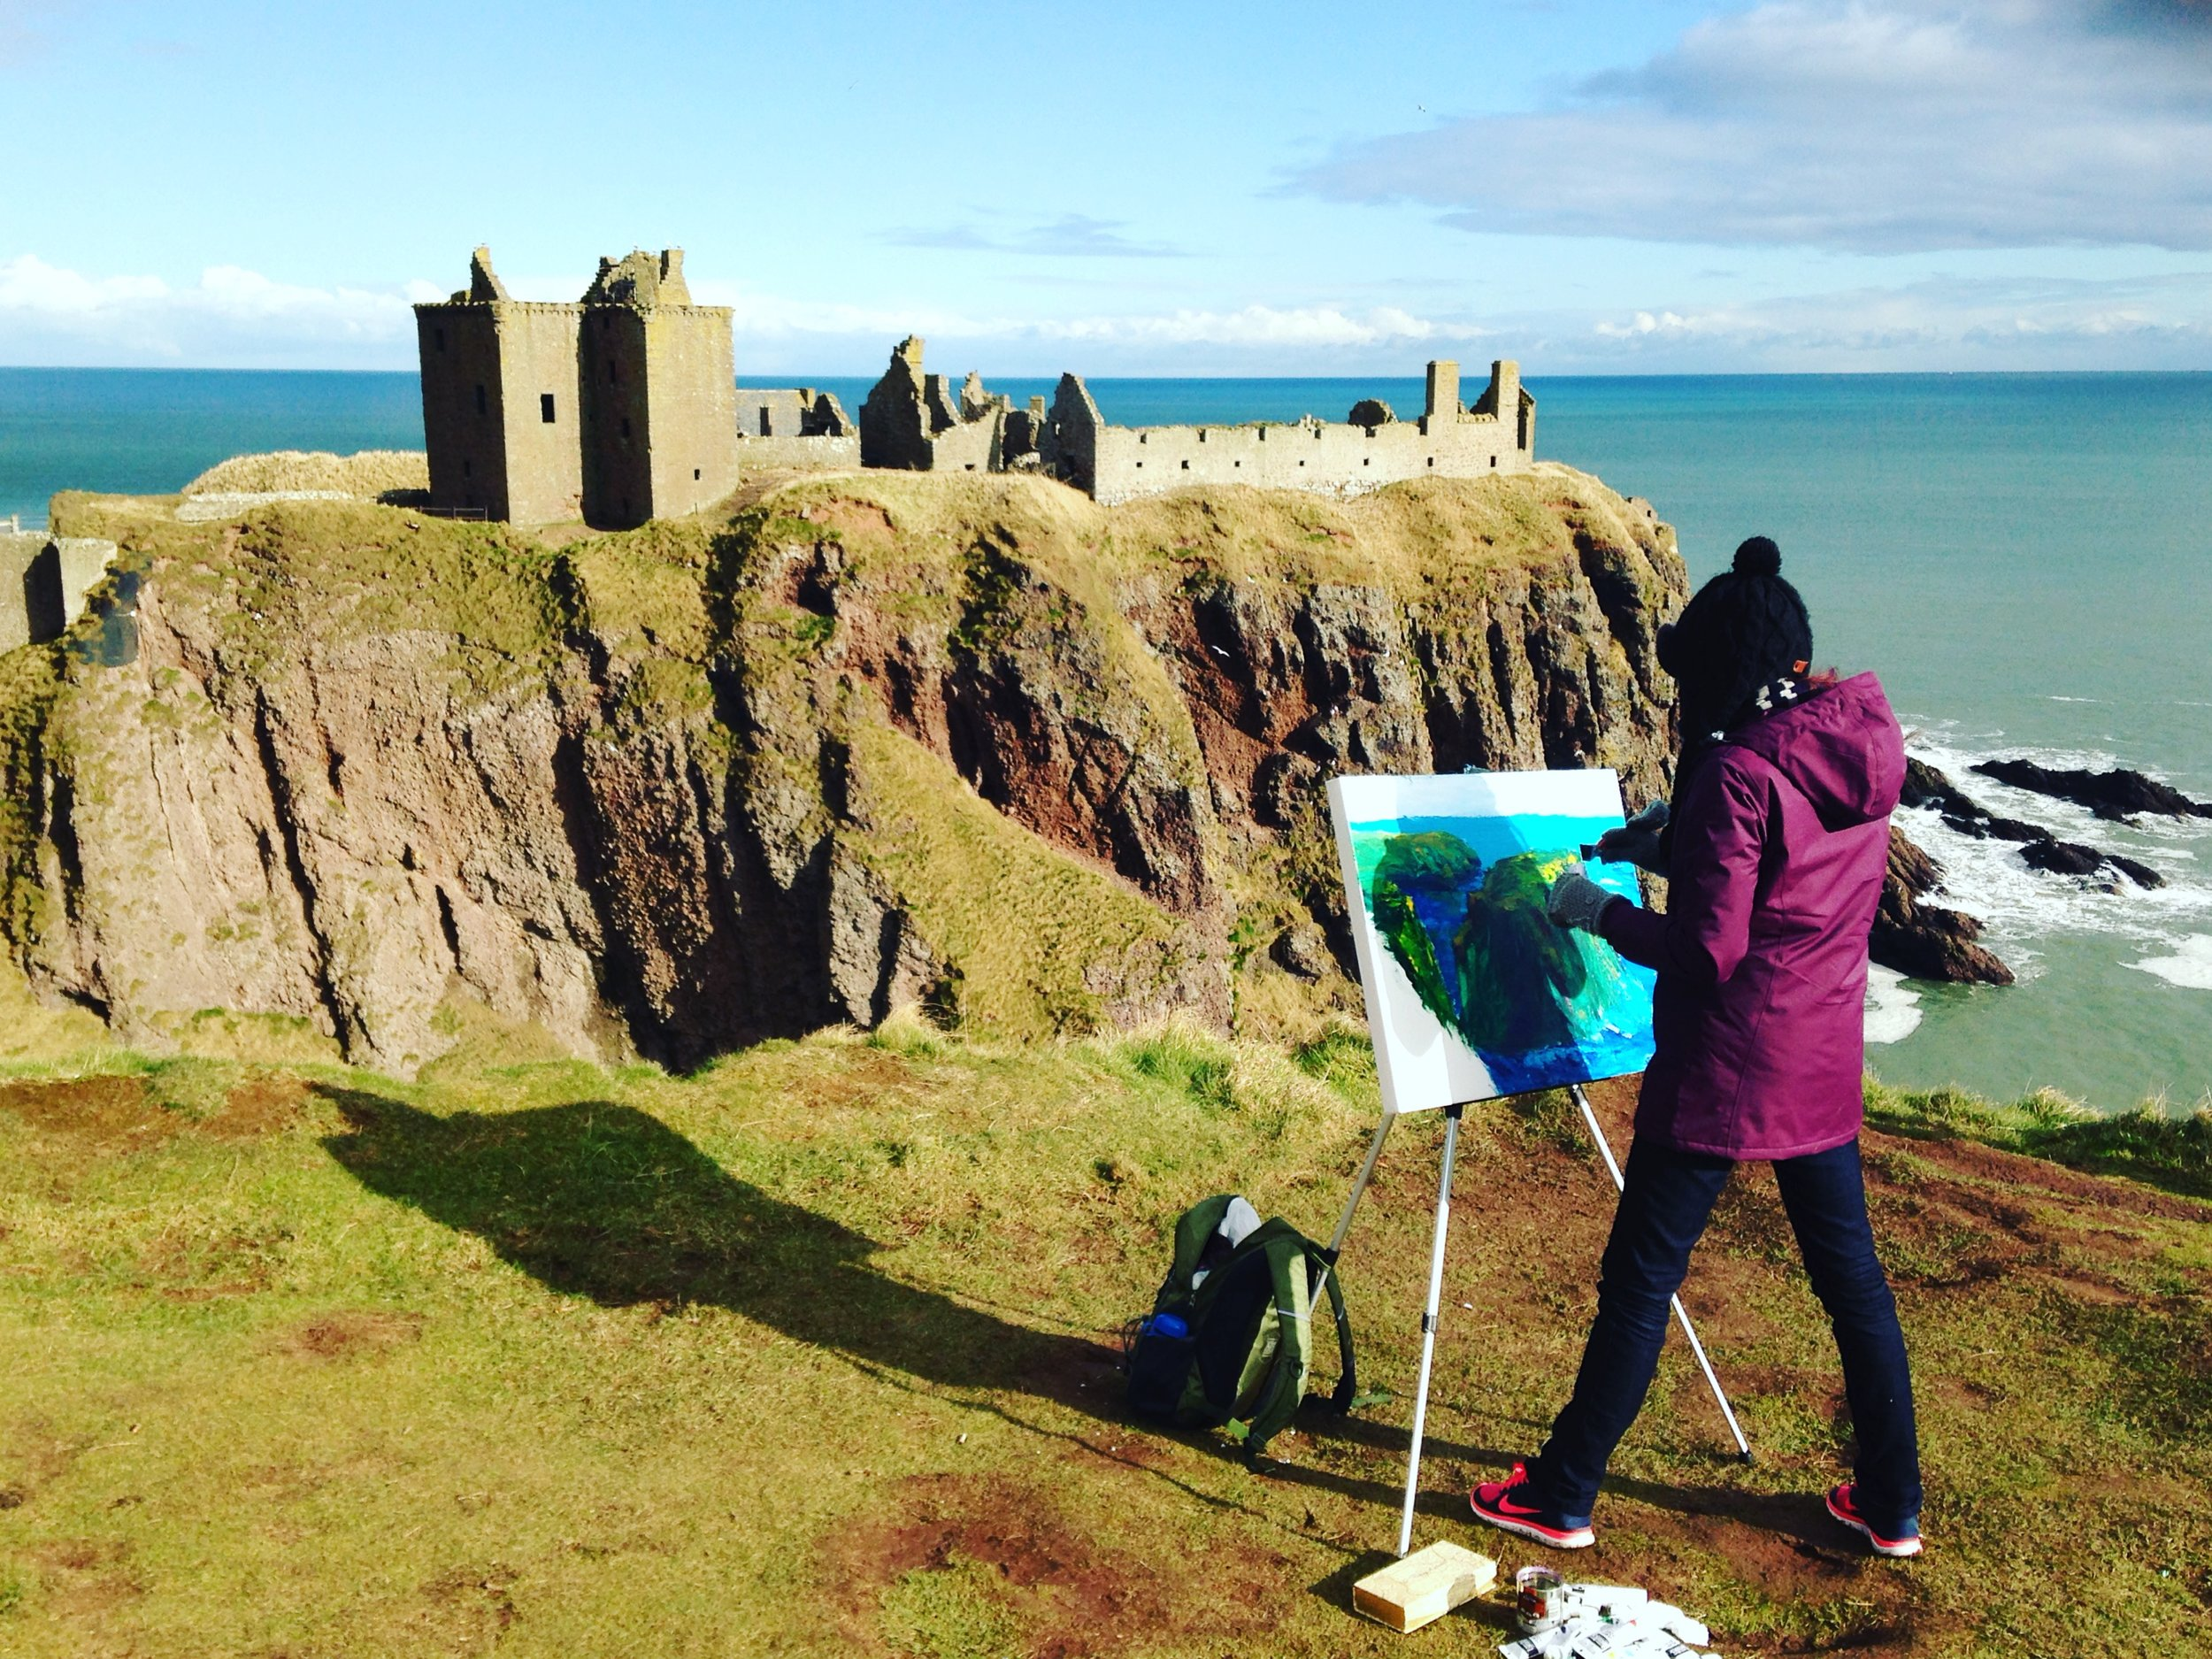 Painting at Stonehaven, Scotland. February 2016.